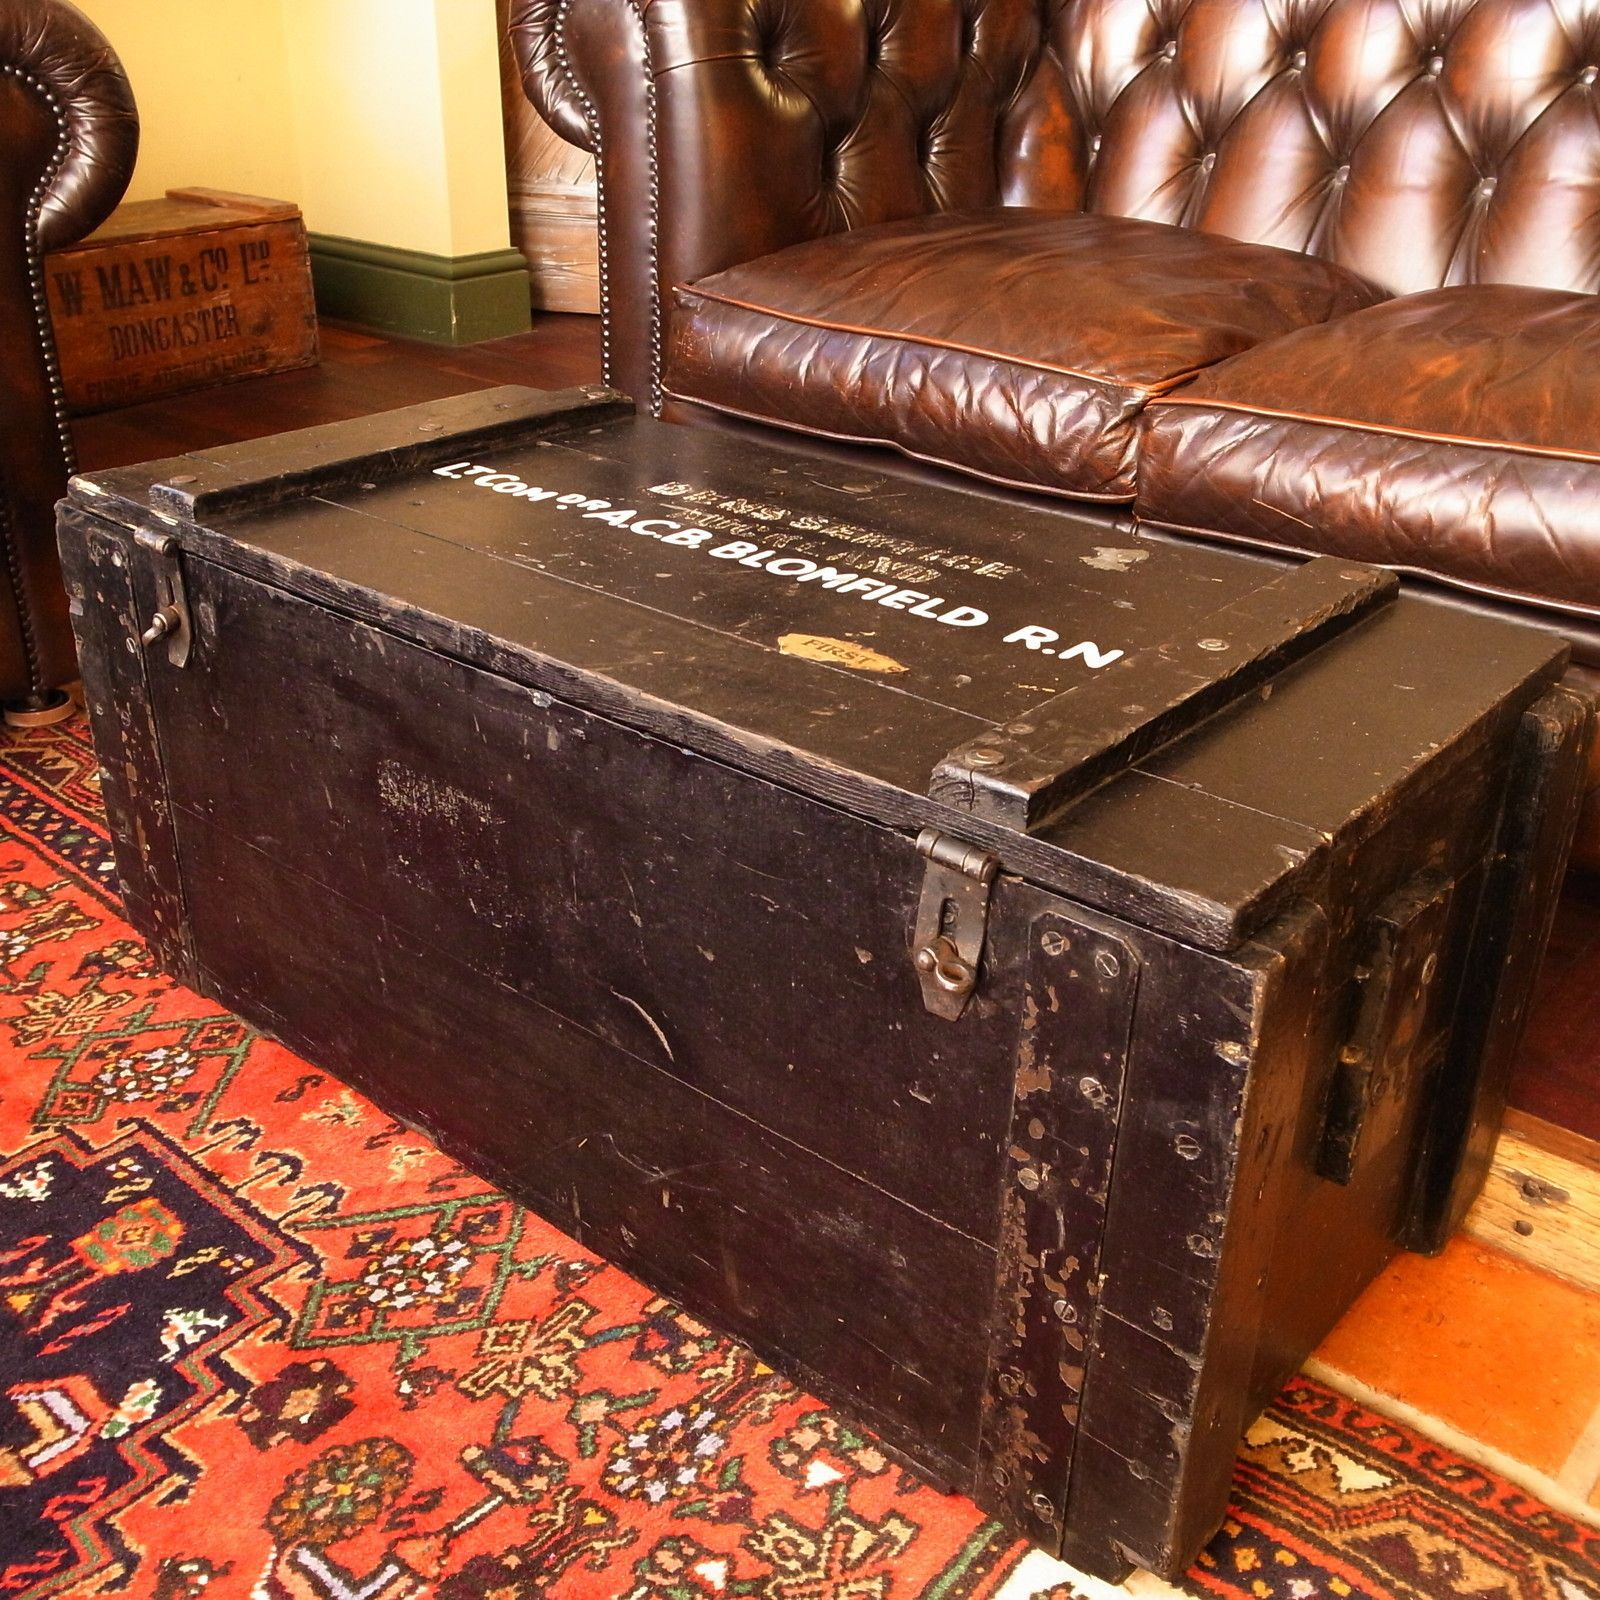 VINTAGE WWII Military NAVAL Sea Chest Trunk RUSTIC Plank COFFEE TABLE  Industrial | EBay